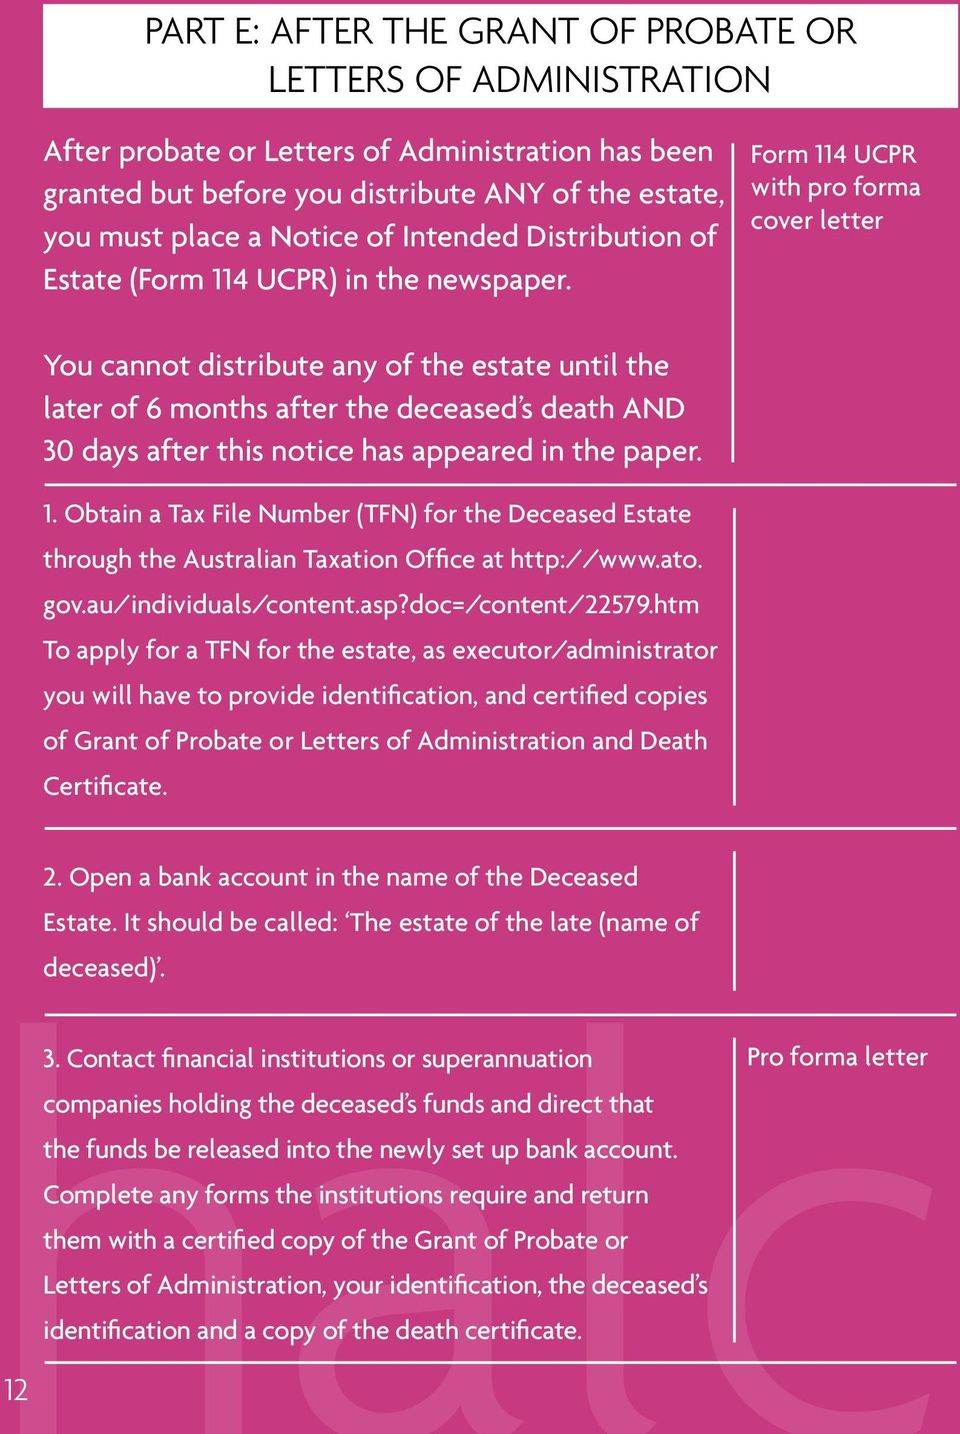 Form 114 UCPR with pro forma cover letter You cannot distribute any of the estate until the later of 6 months after the deceased s death AND 30 days after this notice has appeared in the paper. 1. Obtain a Tax File Number (TFN) for the Deceased Estate through the Australian Taxation Office at http://www.